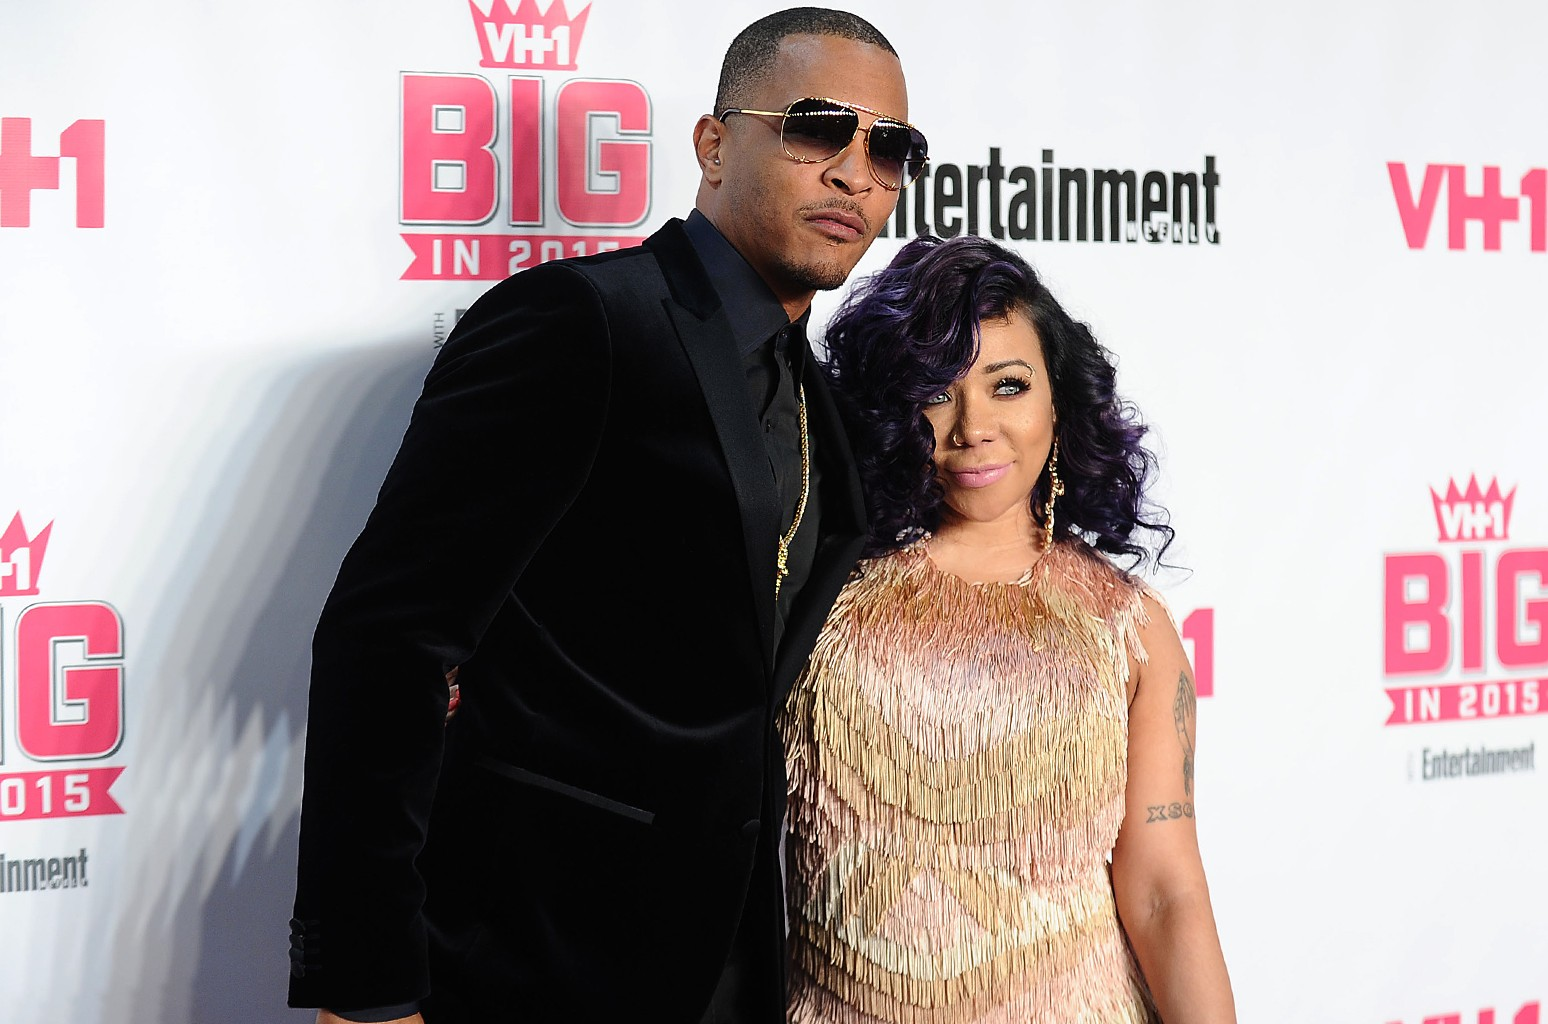 """T.I. and Tameka """"Tiny"""" Cottle-Harris attend the VH1 Big In 2015 with Entertainment Weekly Awards at Pacific Design Center on Nov. 15, 2015 in West Hollywood, Calif."""